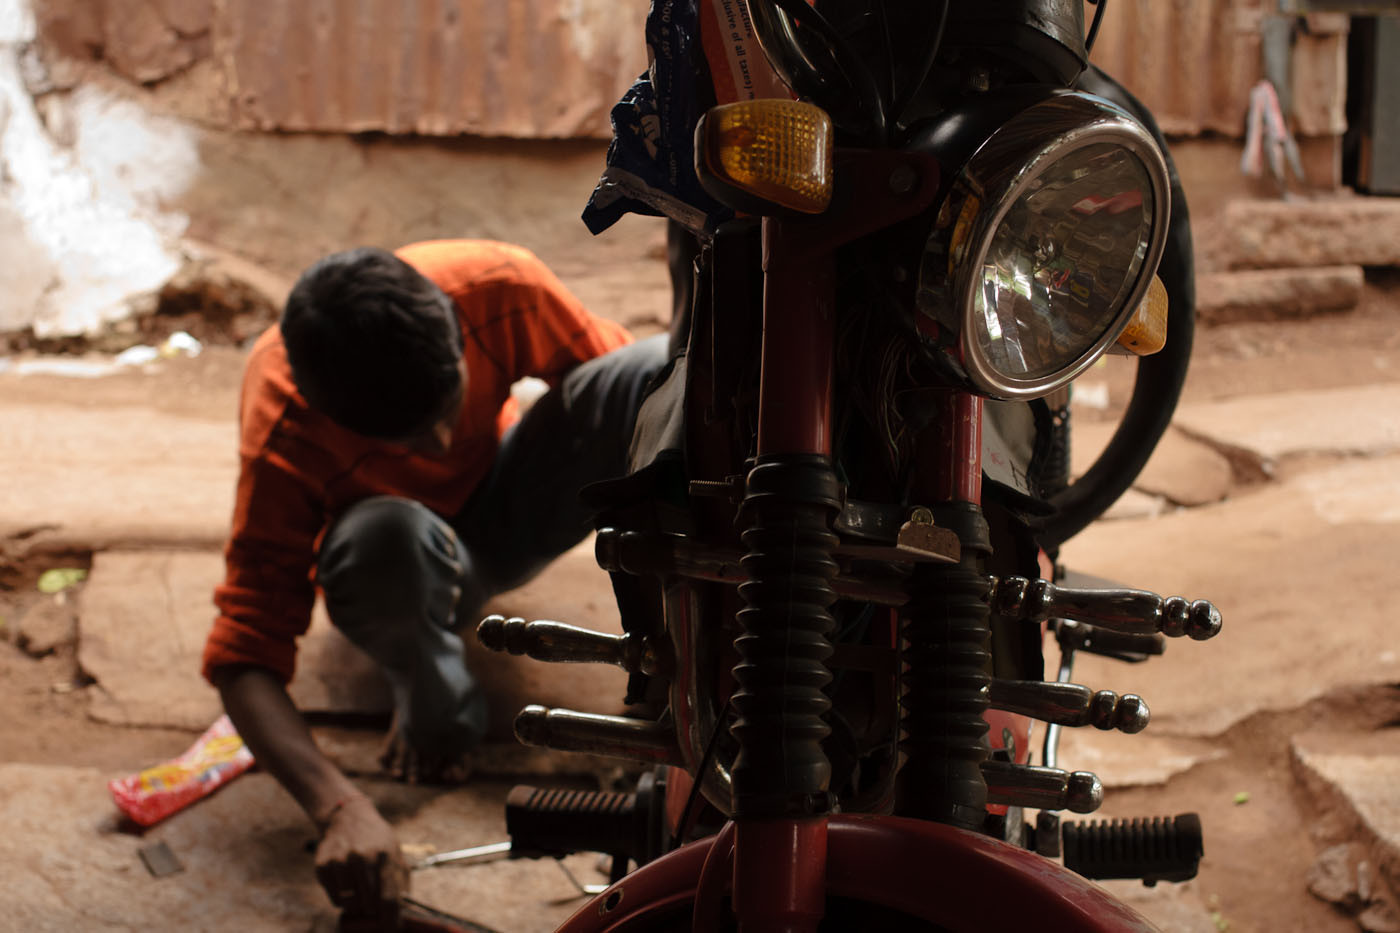 Indian boy fixing a flat tire on a scooter in a bike shop in Hospet, India